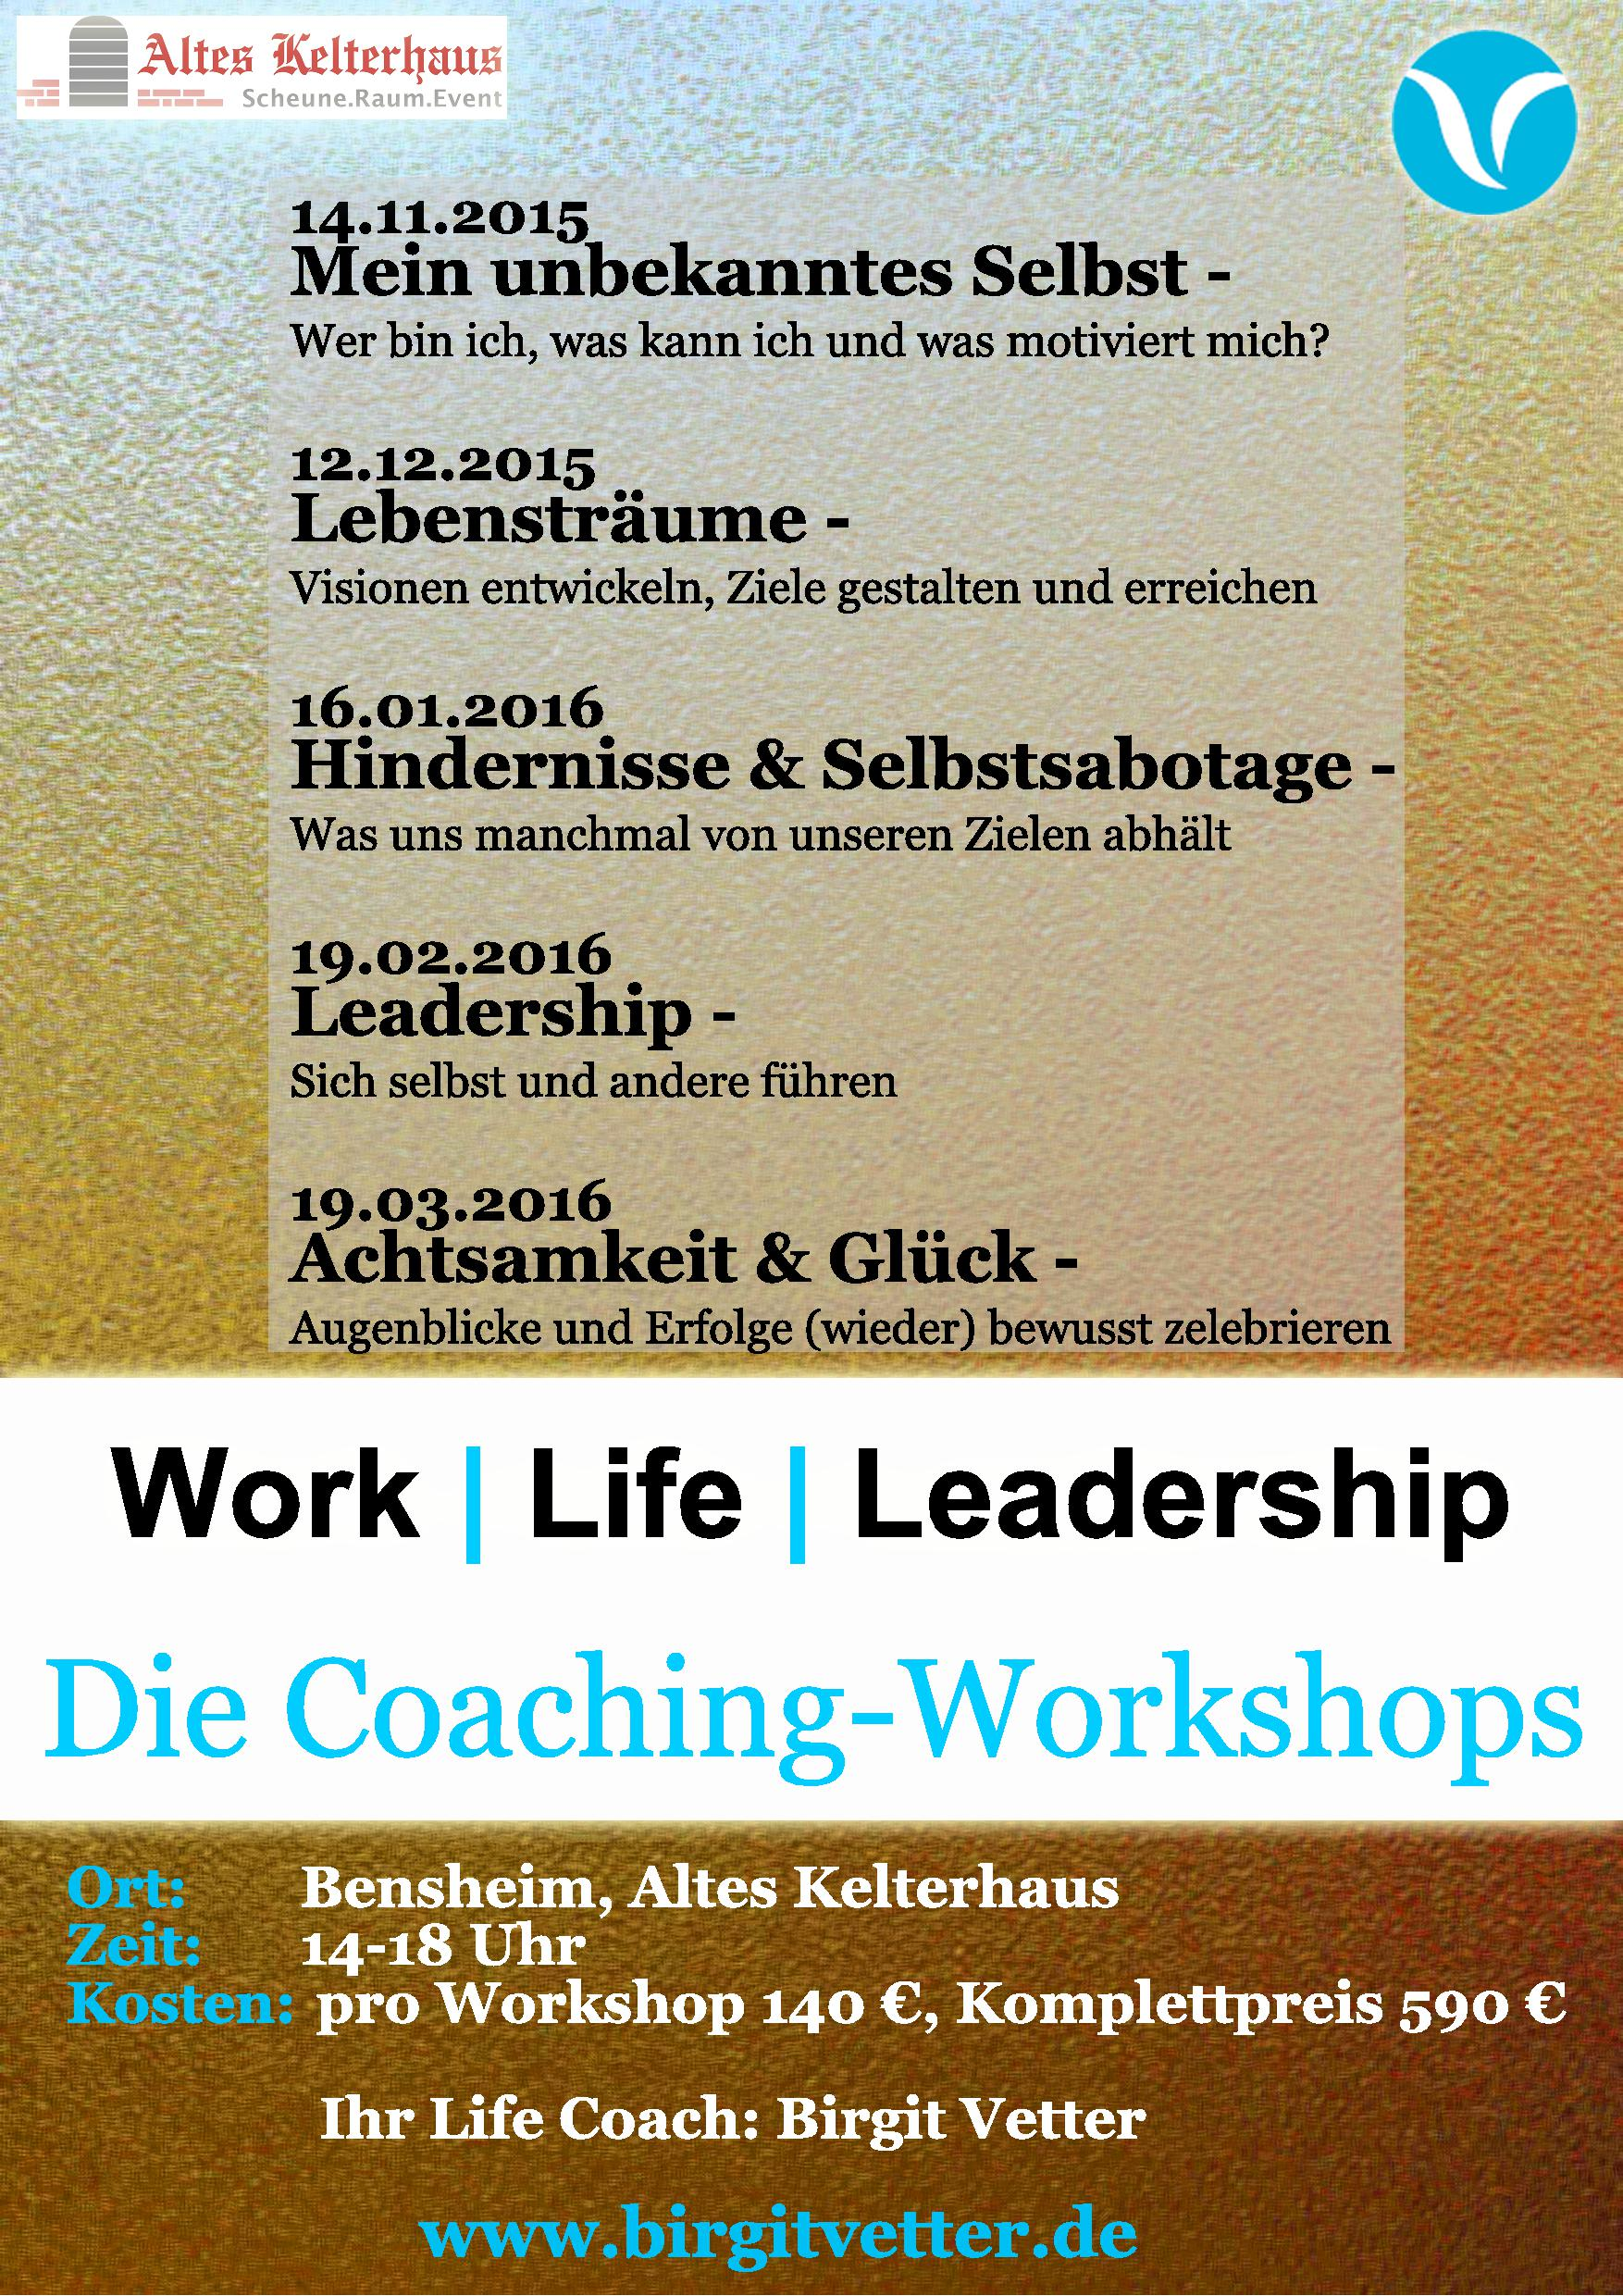 Work | Life | Leadership Workshop